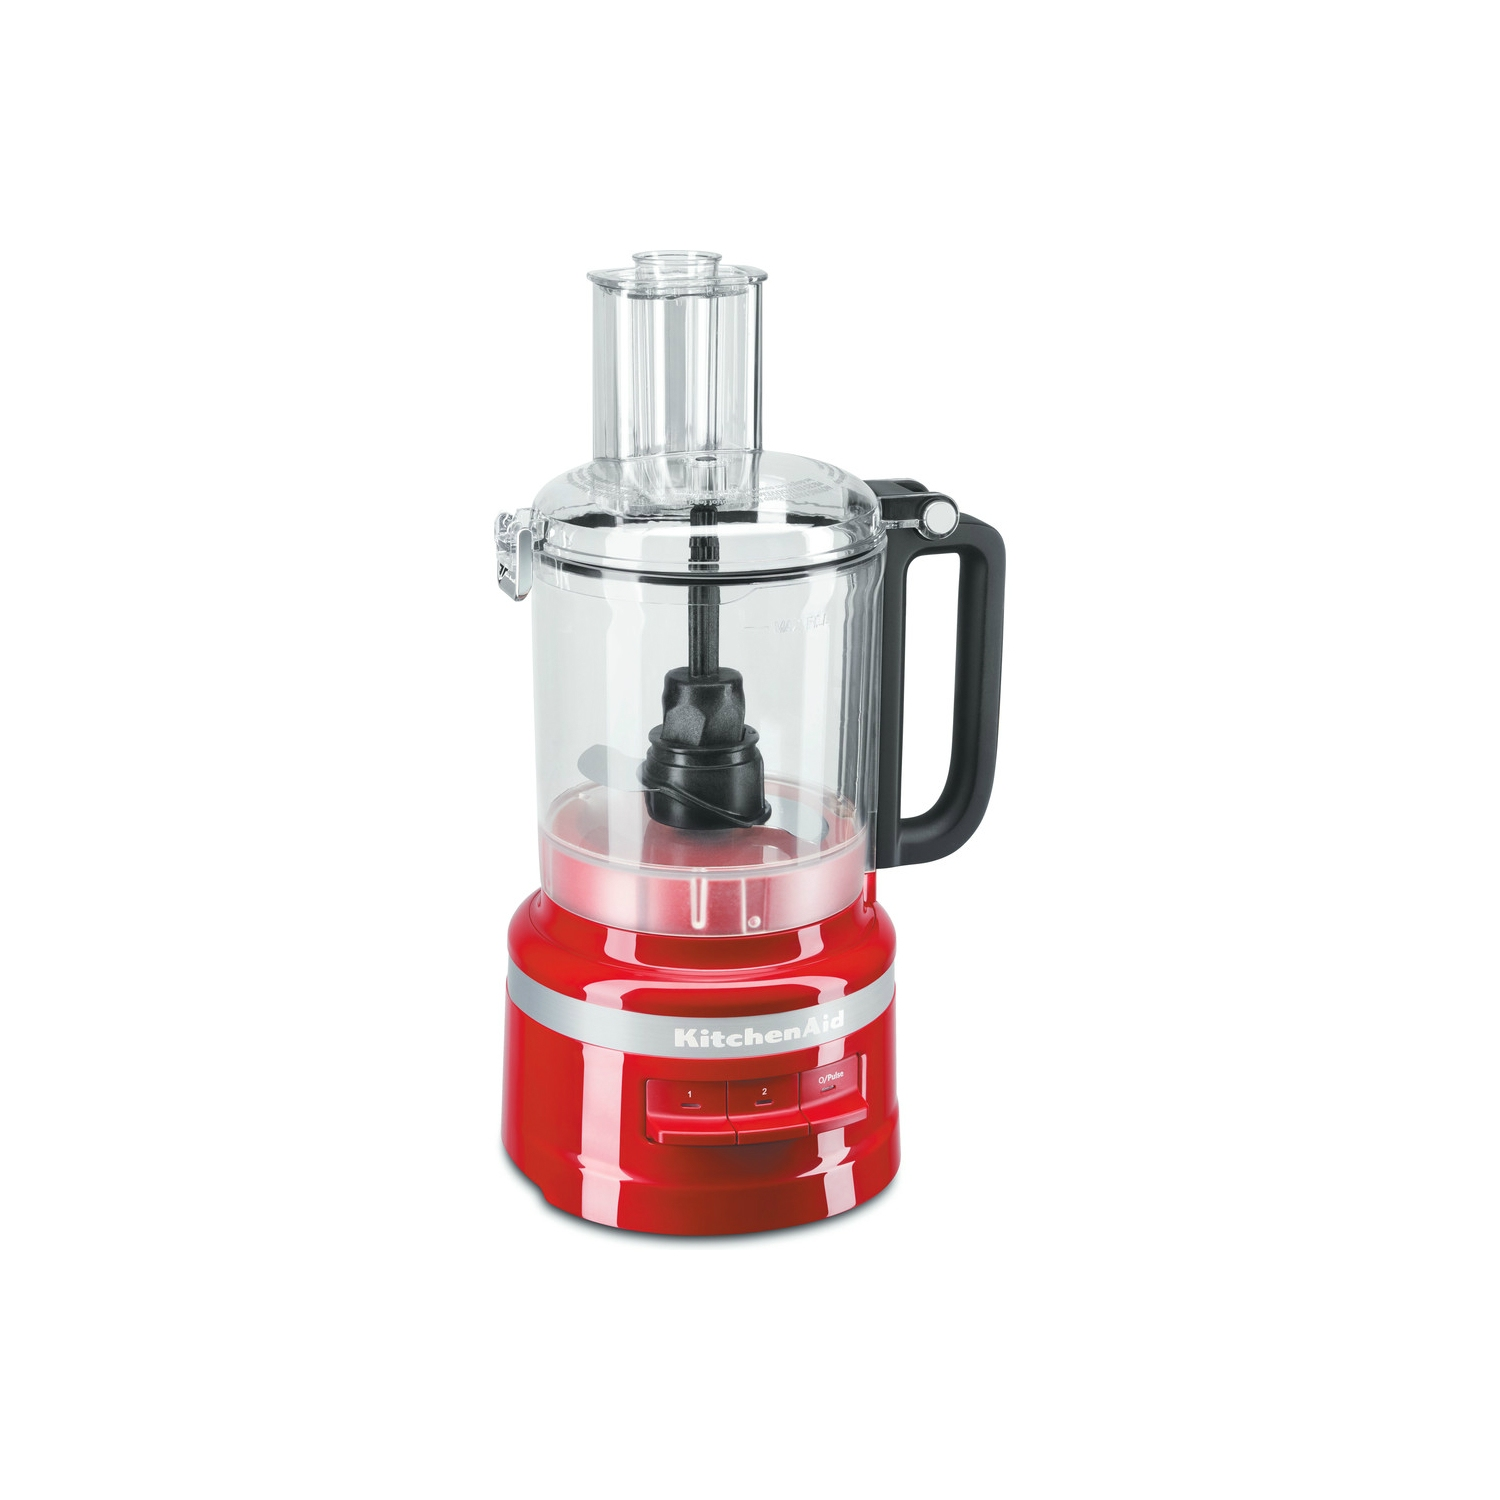 KitchenAid 2.1 Litre Food Processor - Empire Red - 0